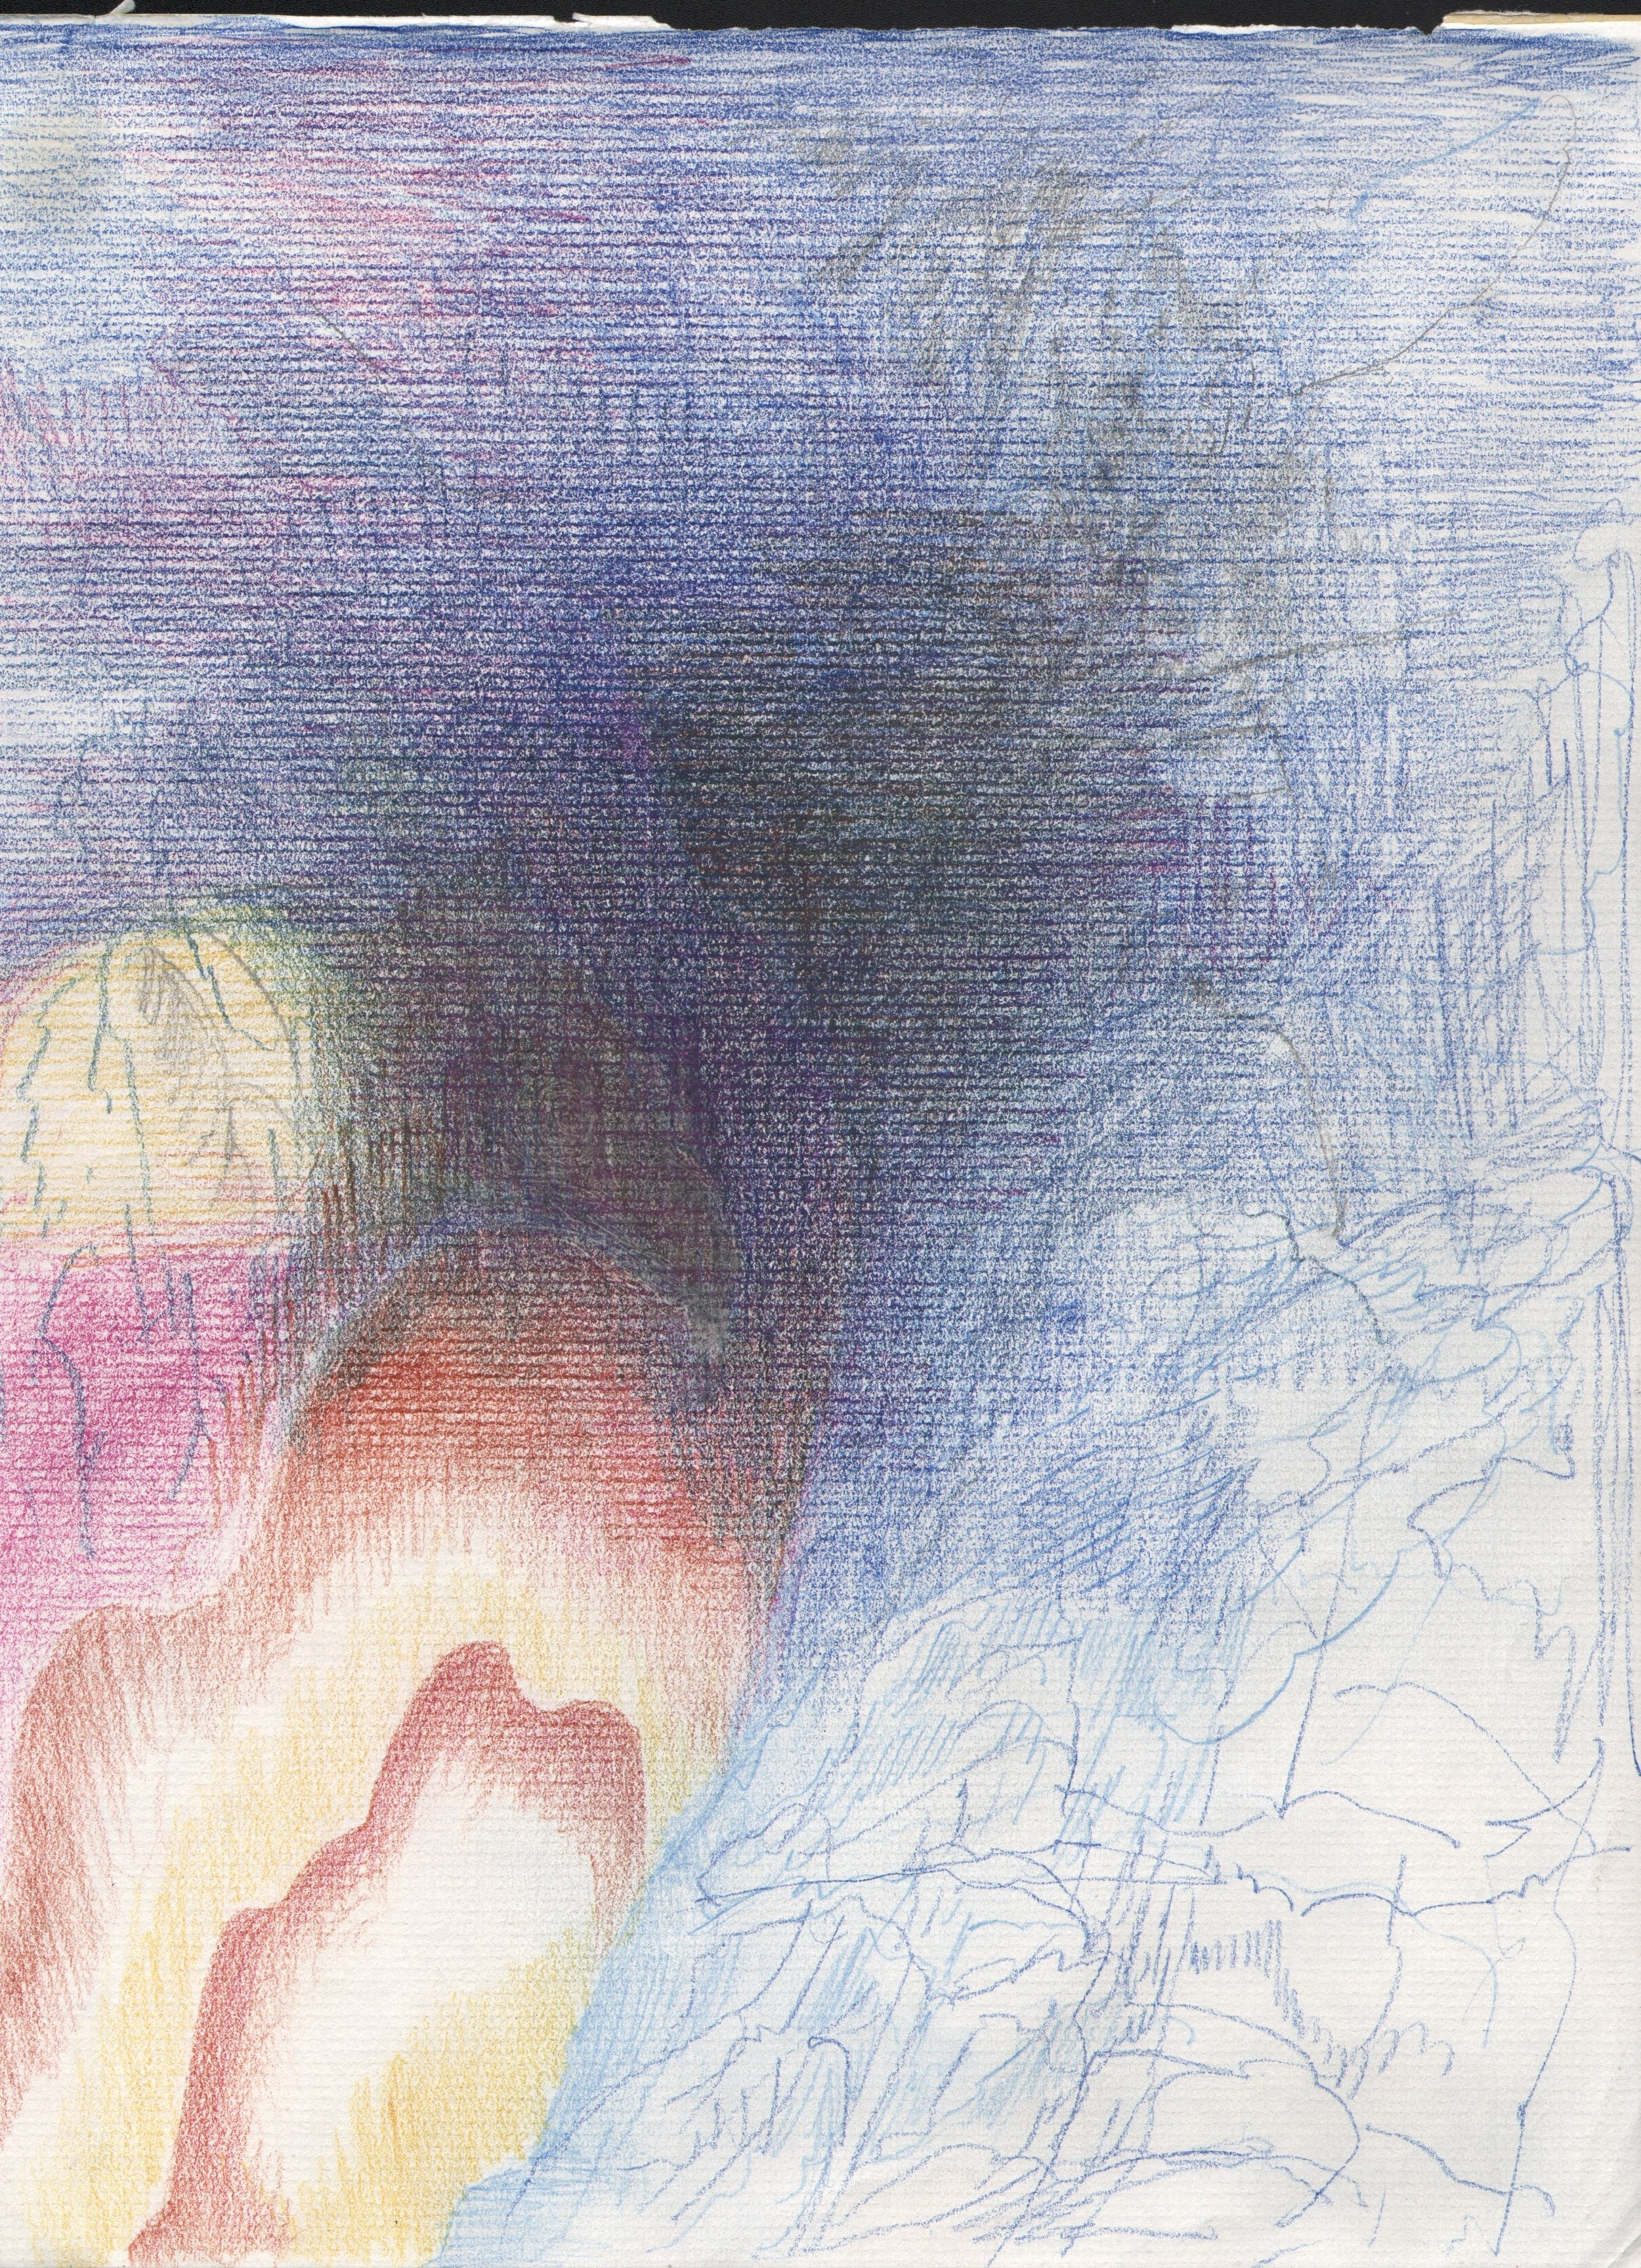 Edge of Night, (2), 12 x 9 inches, pencil on paper